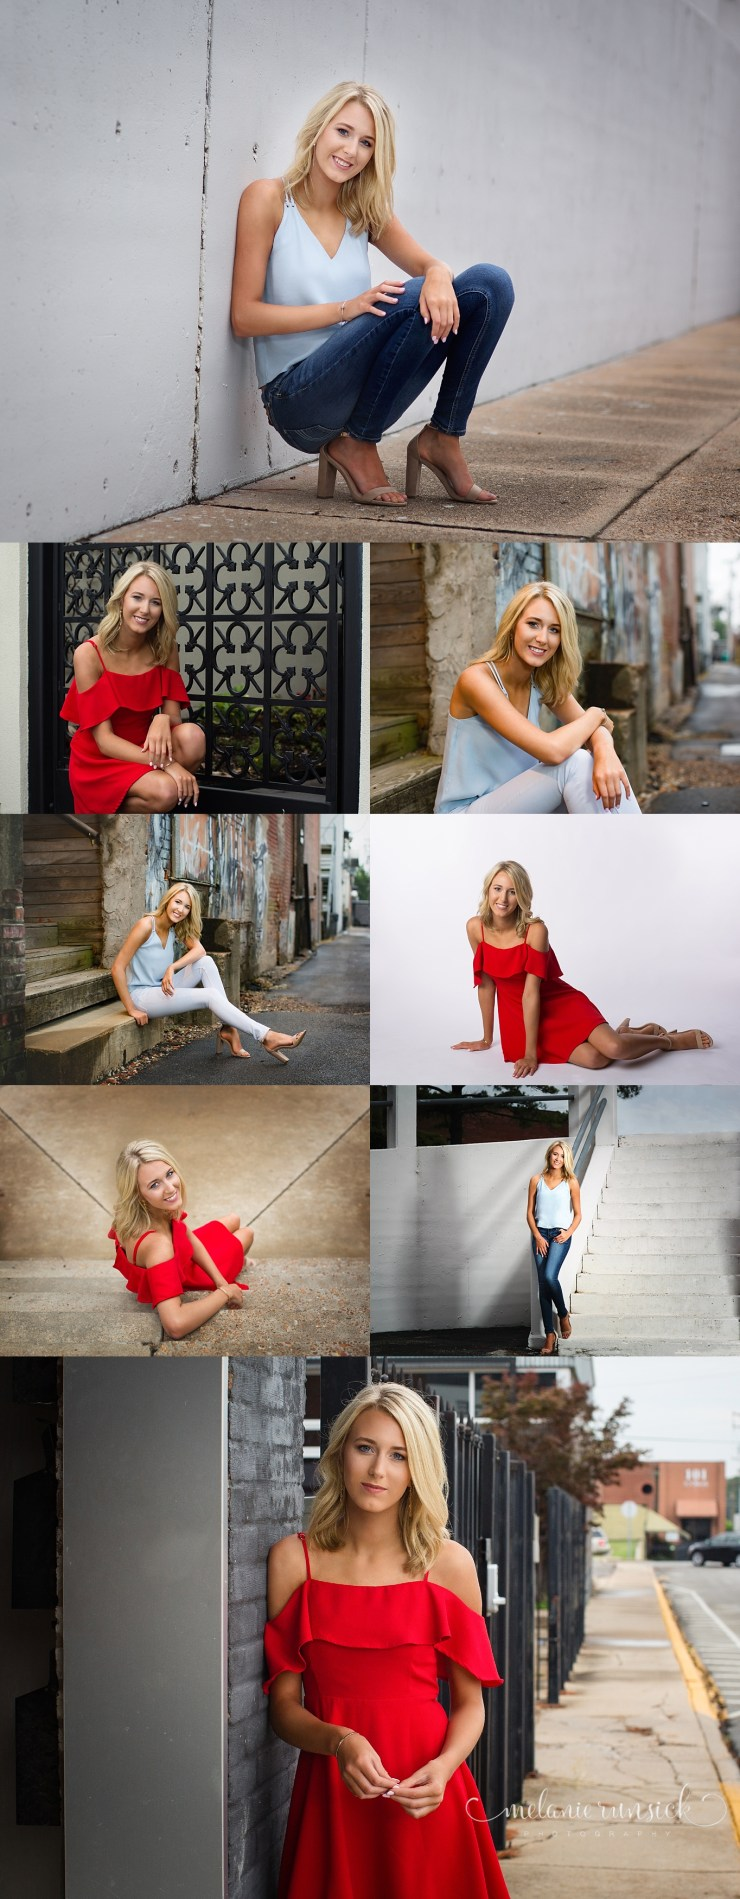 Wynne High School Senior Photographer Melanie Runsick Photography Jonesboro AR